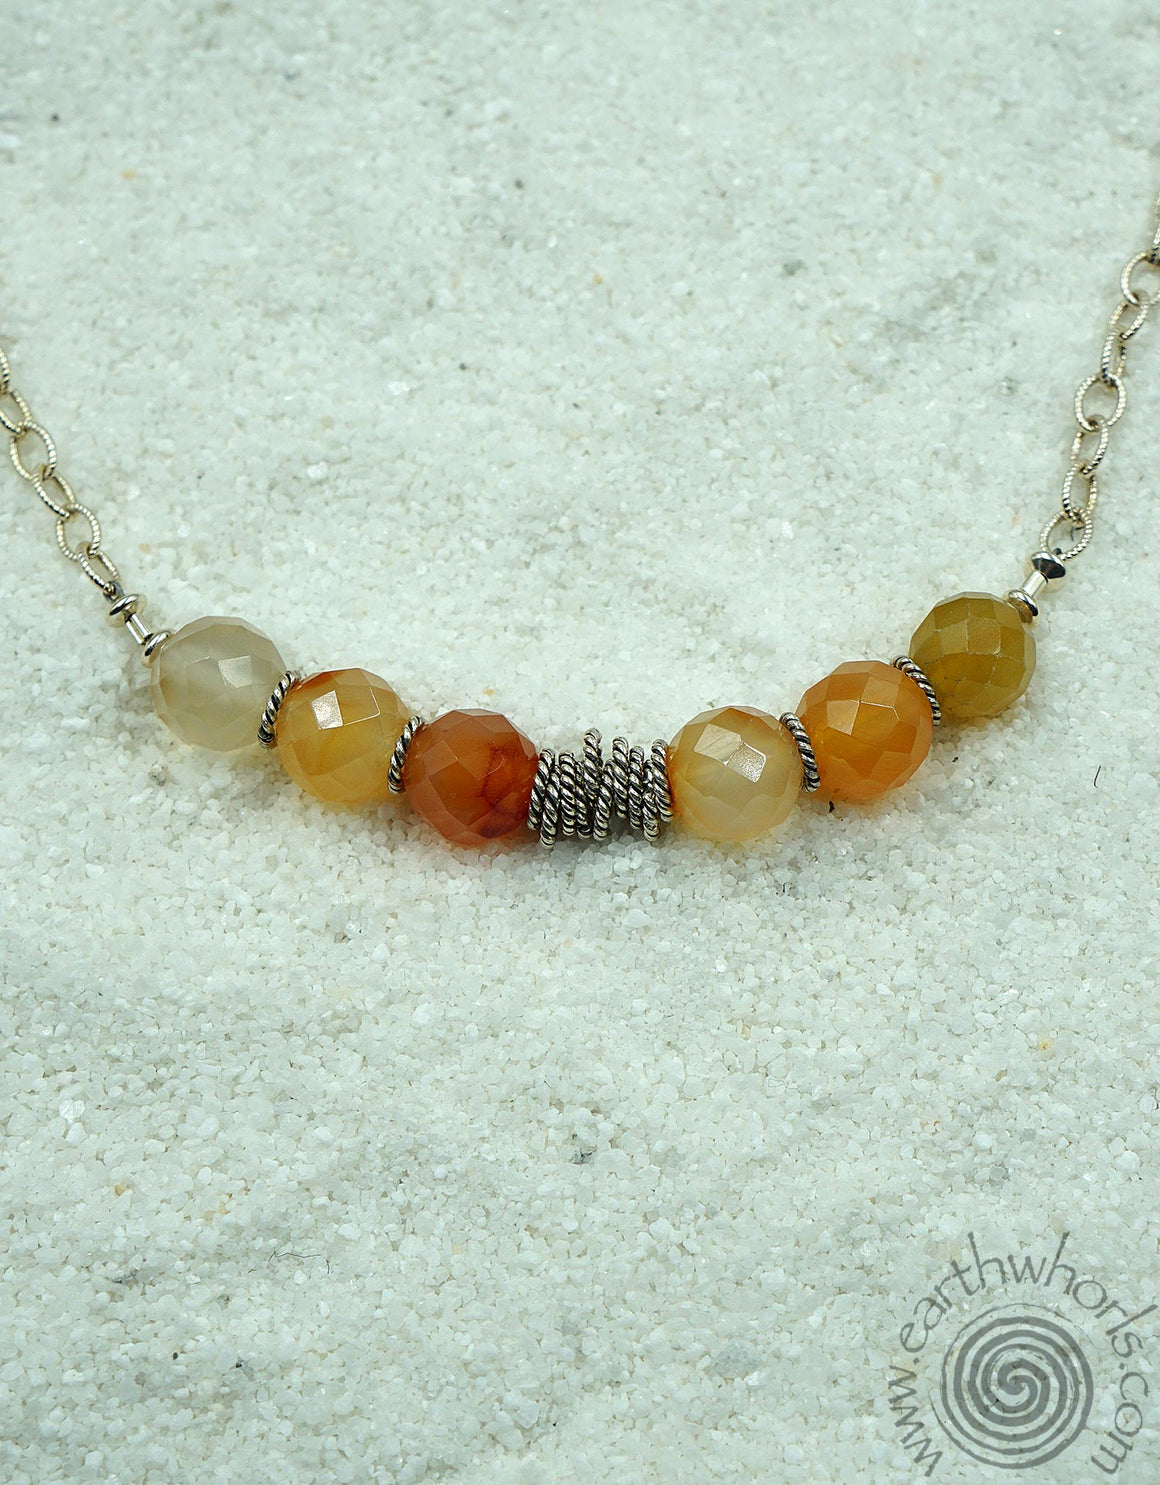 Carnelian & Sterling Silver EarthWhorls Wrap-It Design - EarthWhorls, LLC